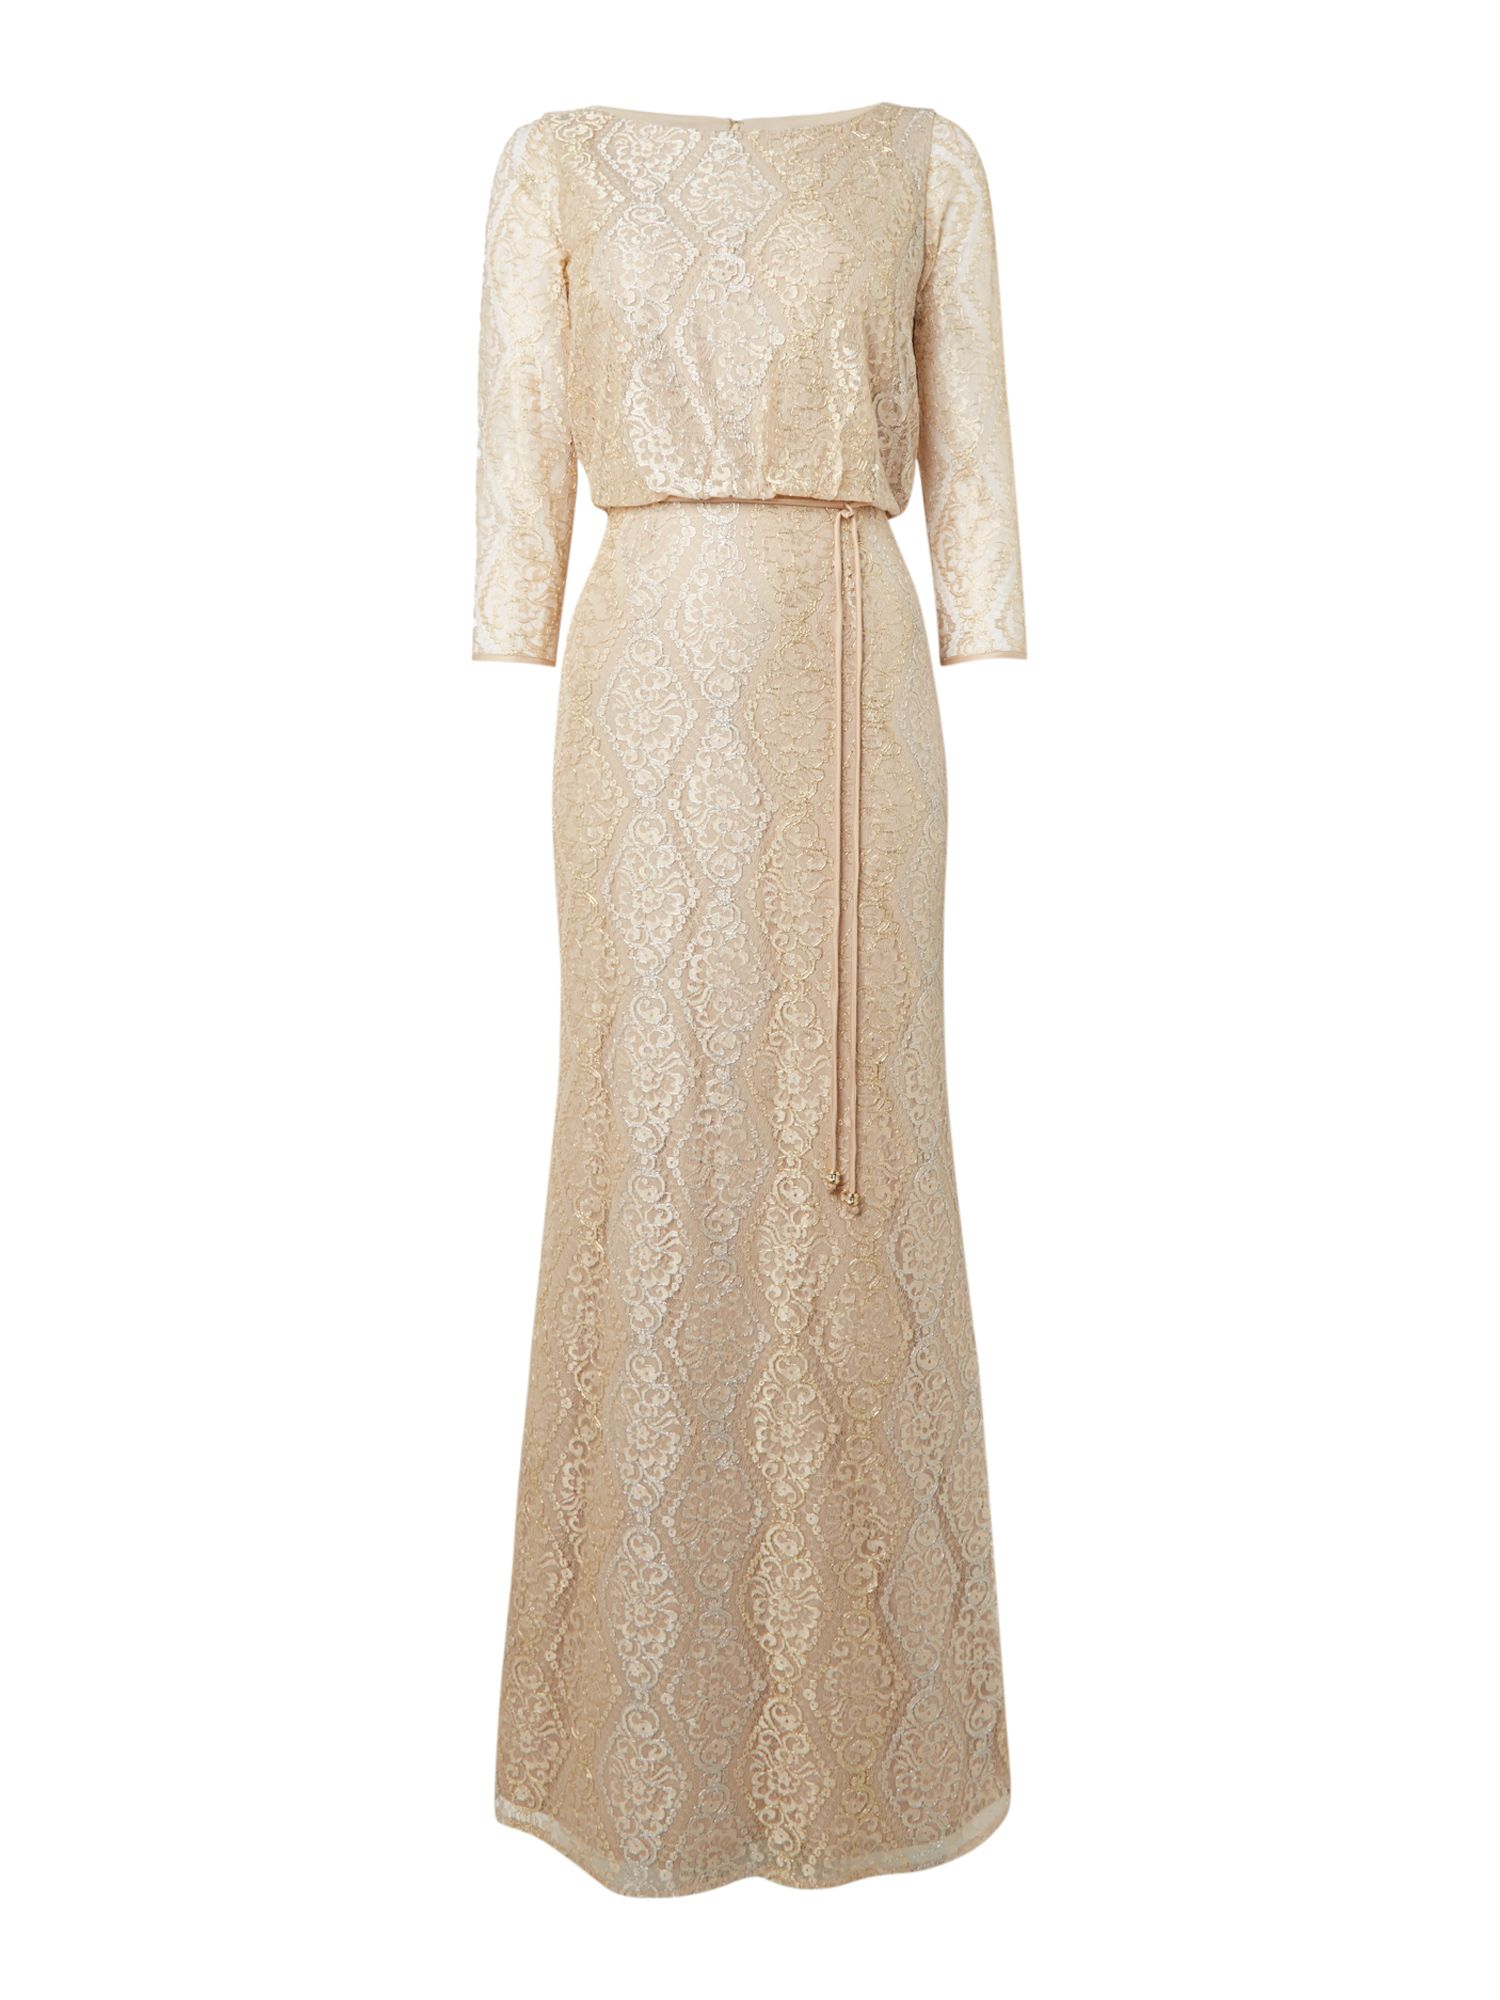 Eliza J Lace Blouson dress with spagetti belt, White